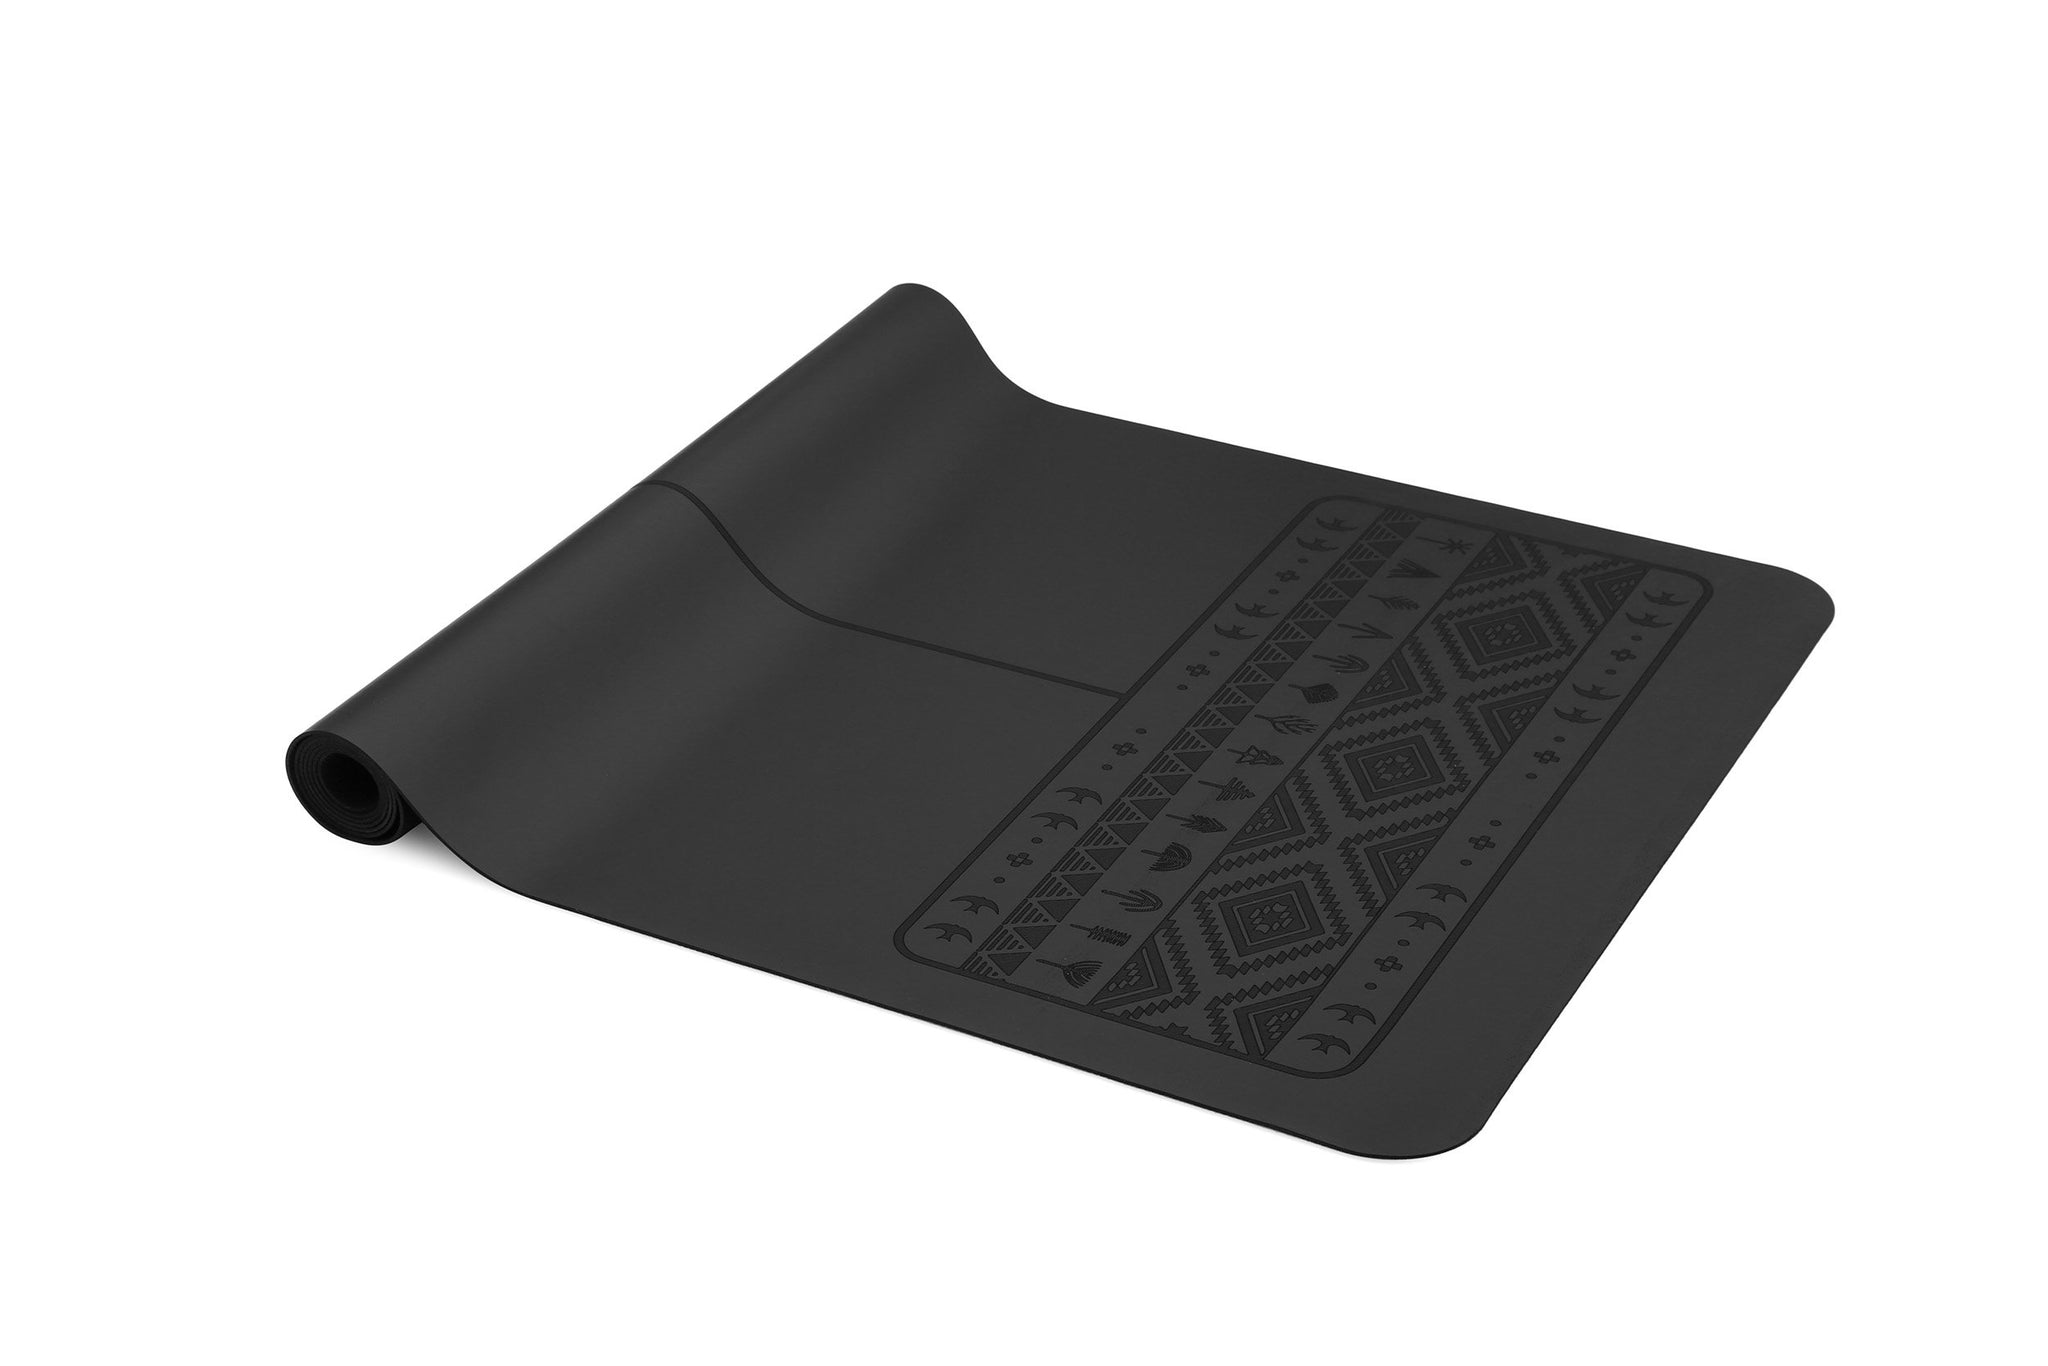 Paws Light - Natural rubber extreme grip yoga mat - Black - Travel version